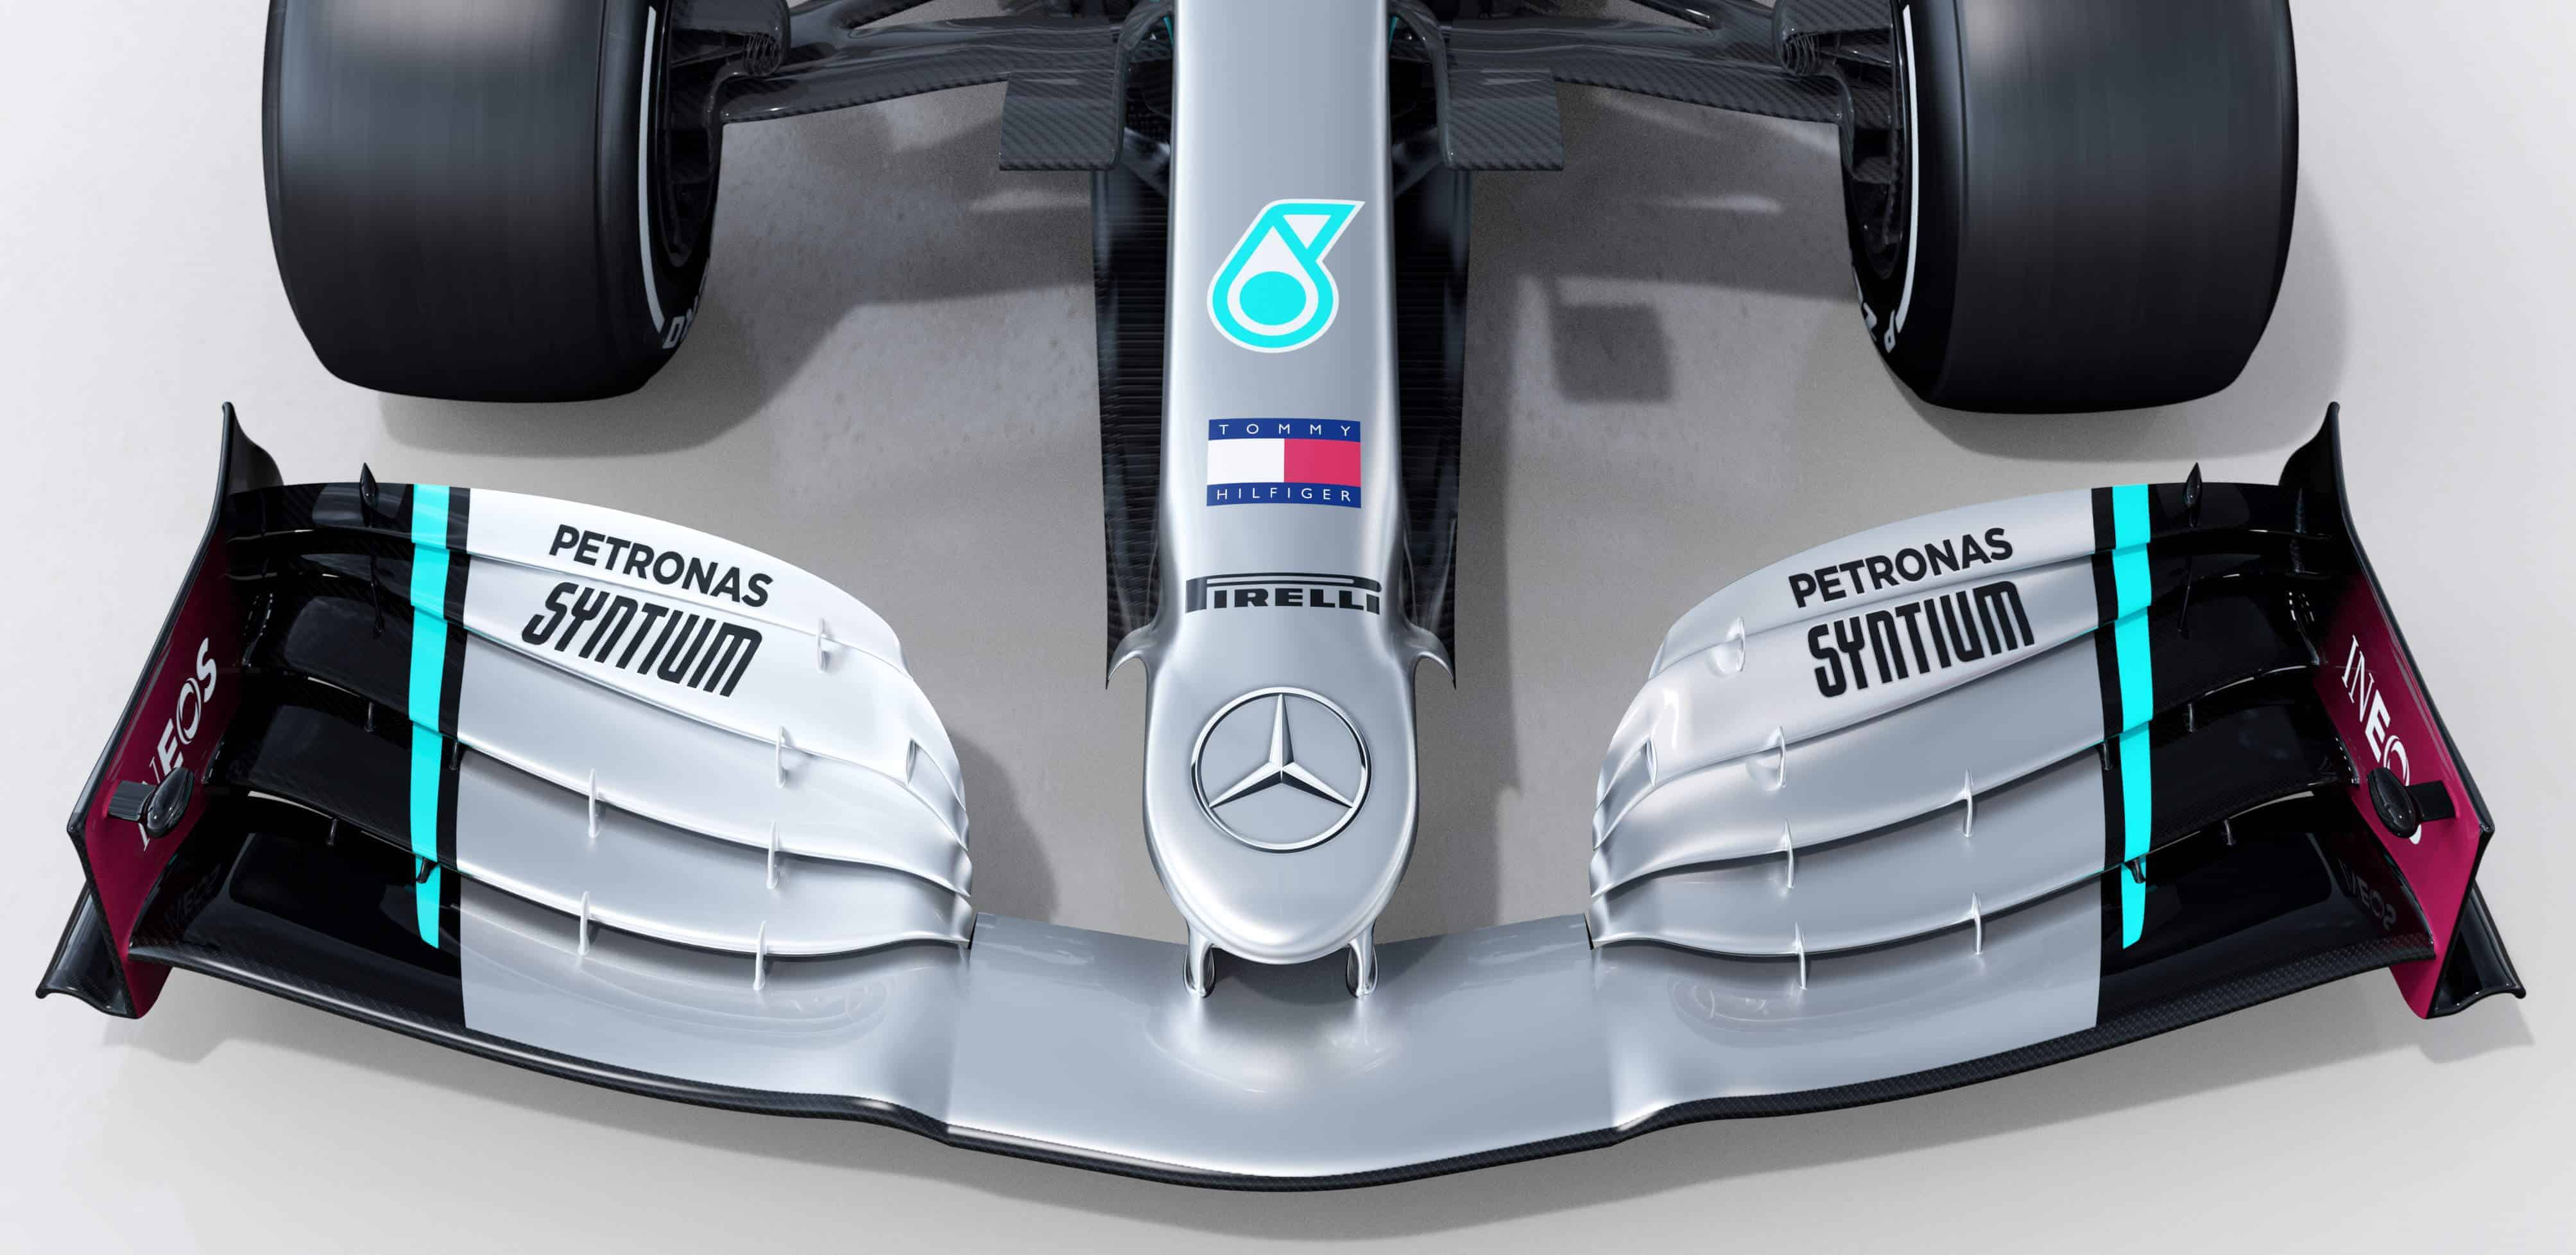 2020 F1 Mercedes F1 W11 nose and front wing Photo Daimler Edited by MAXF1net